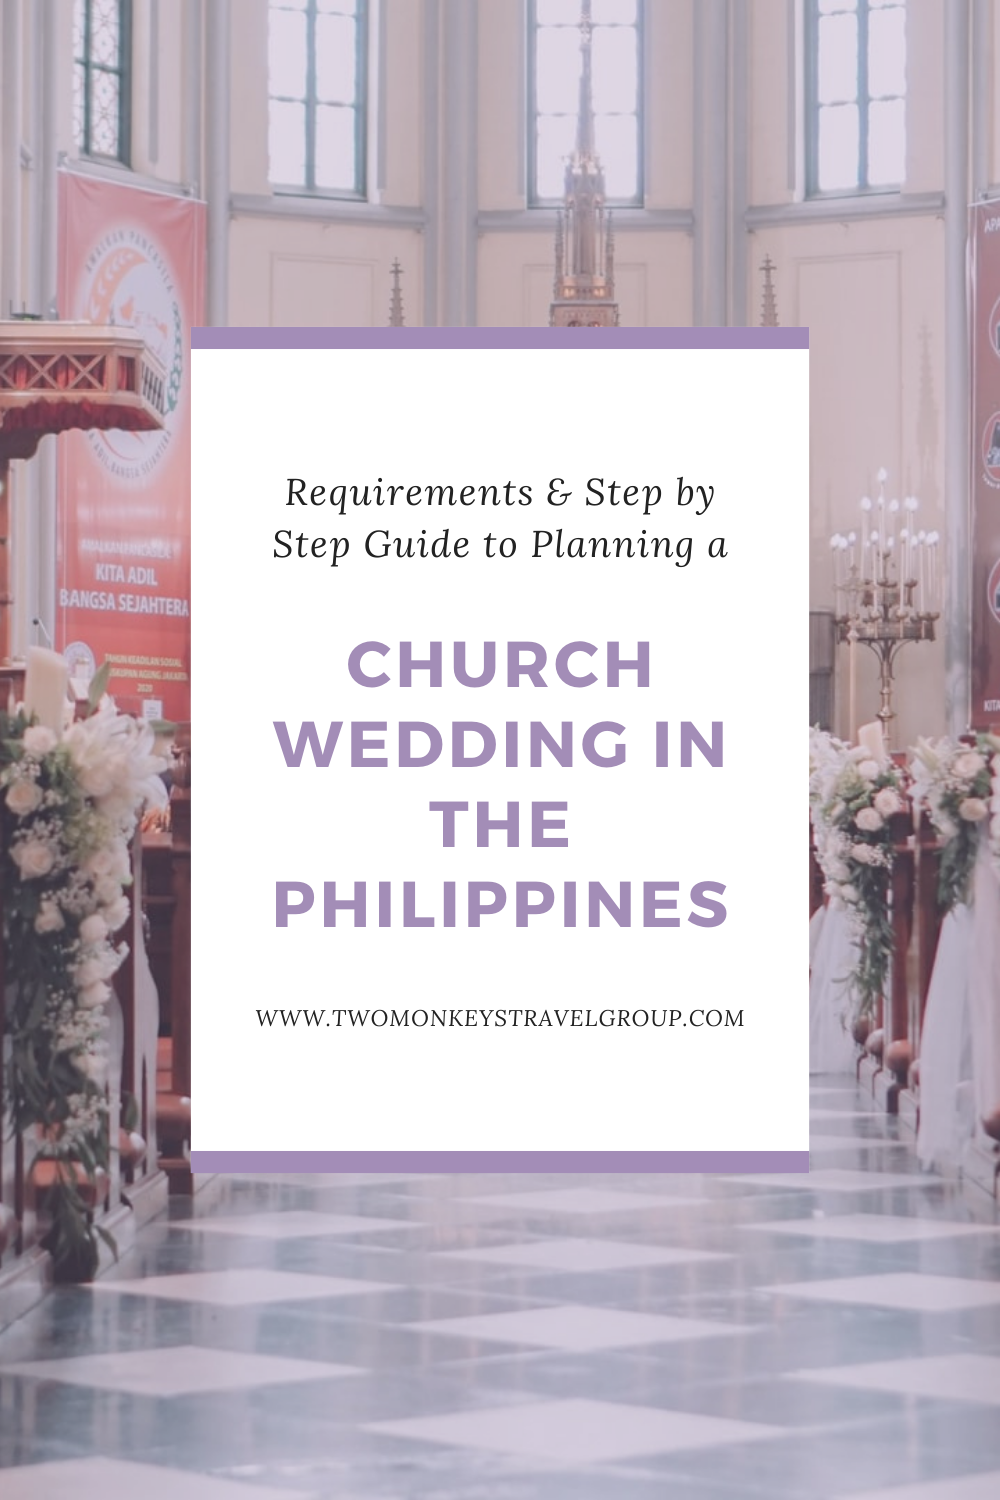 Requirements & Step by Step Guide to Planning a Church Wedding in the Philippines